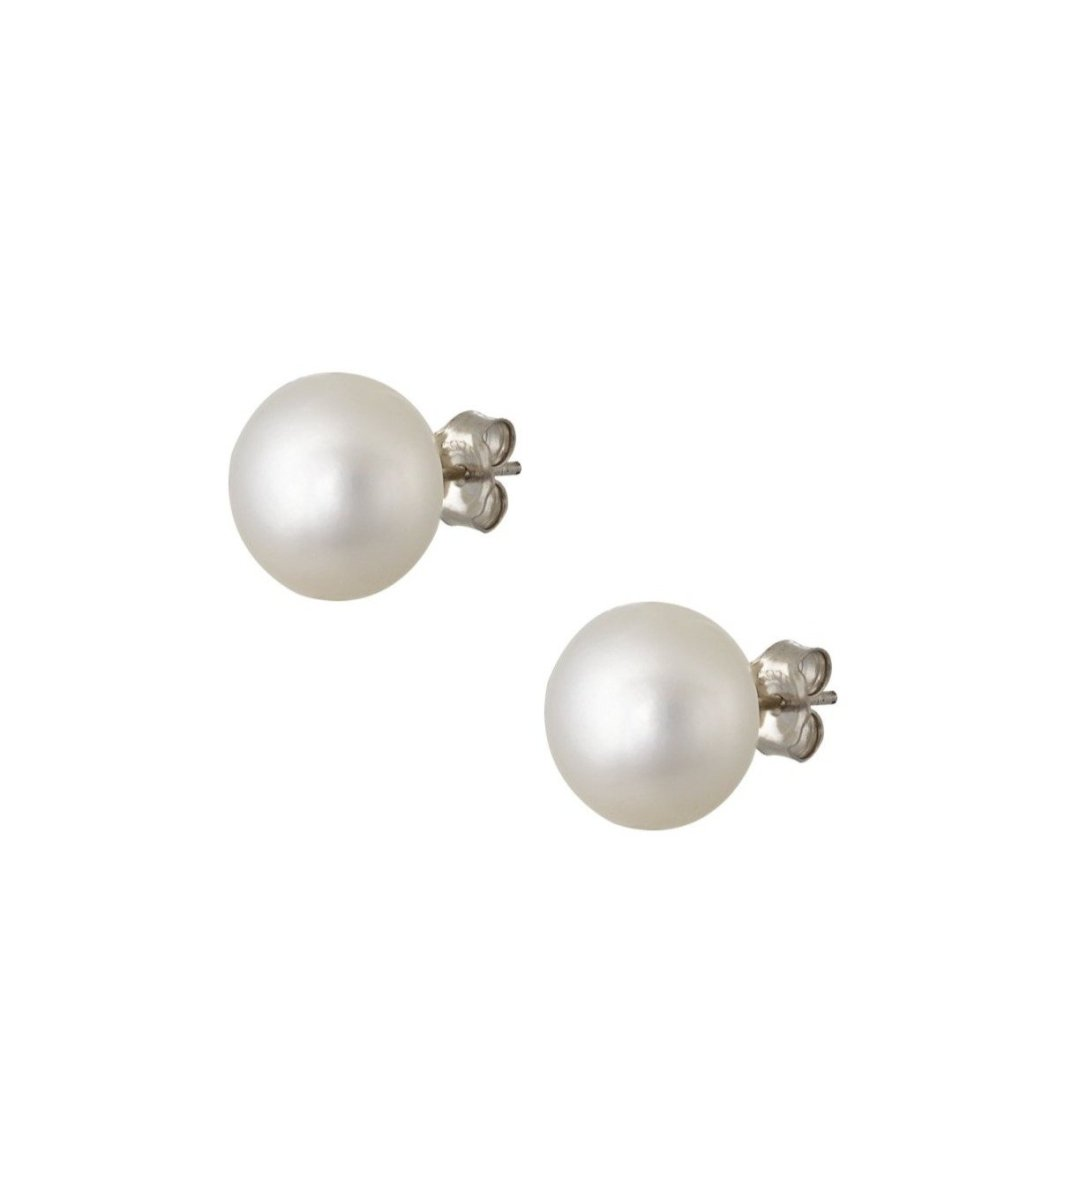 Earrings ER31169 Silver Stud with Pearls 0,9cm - Goldy Jewelry Store